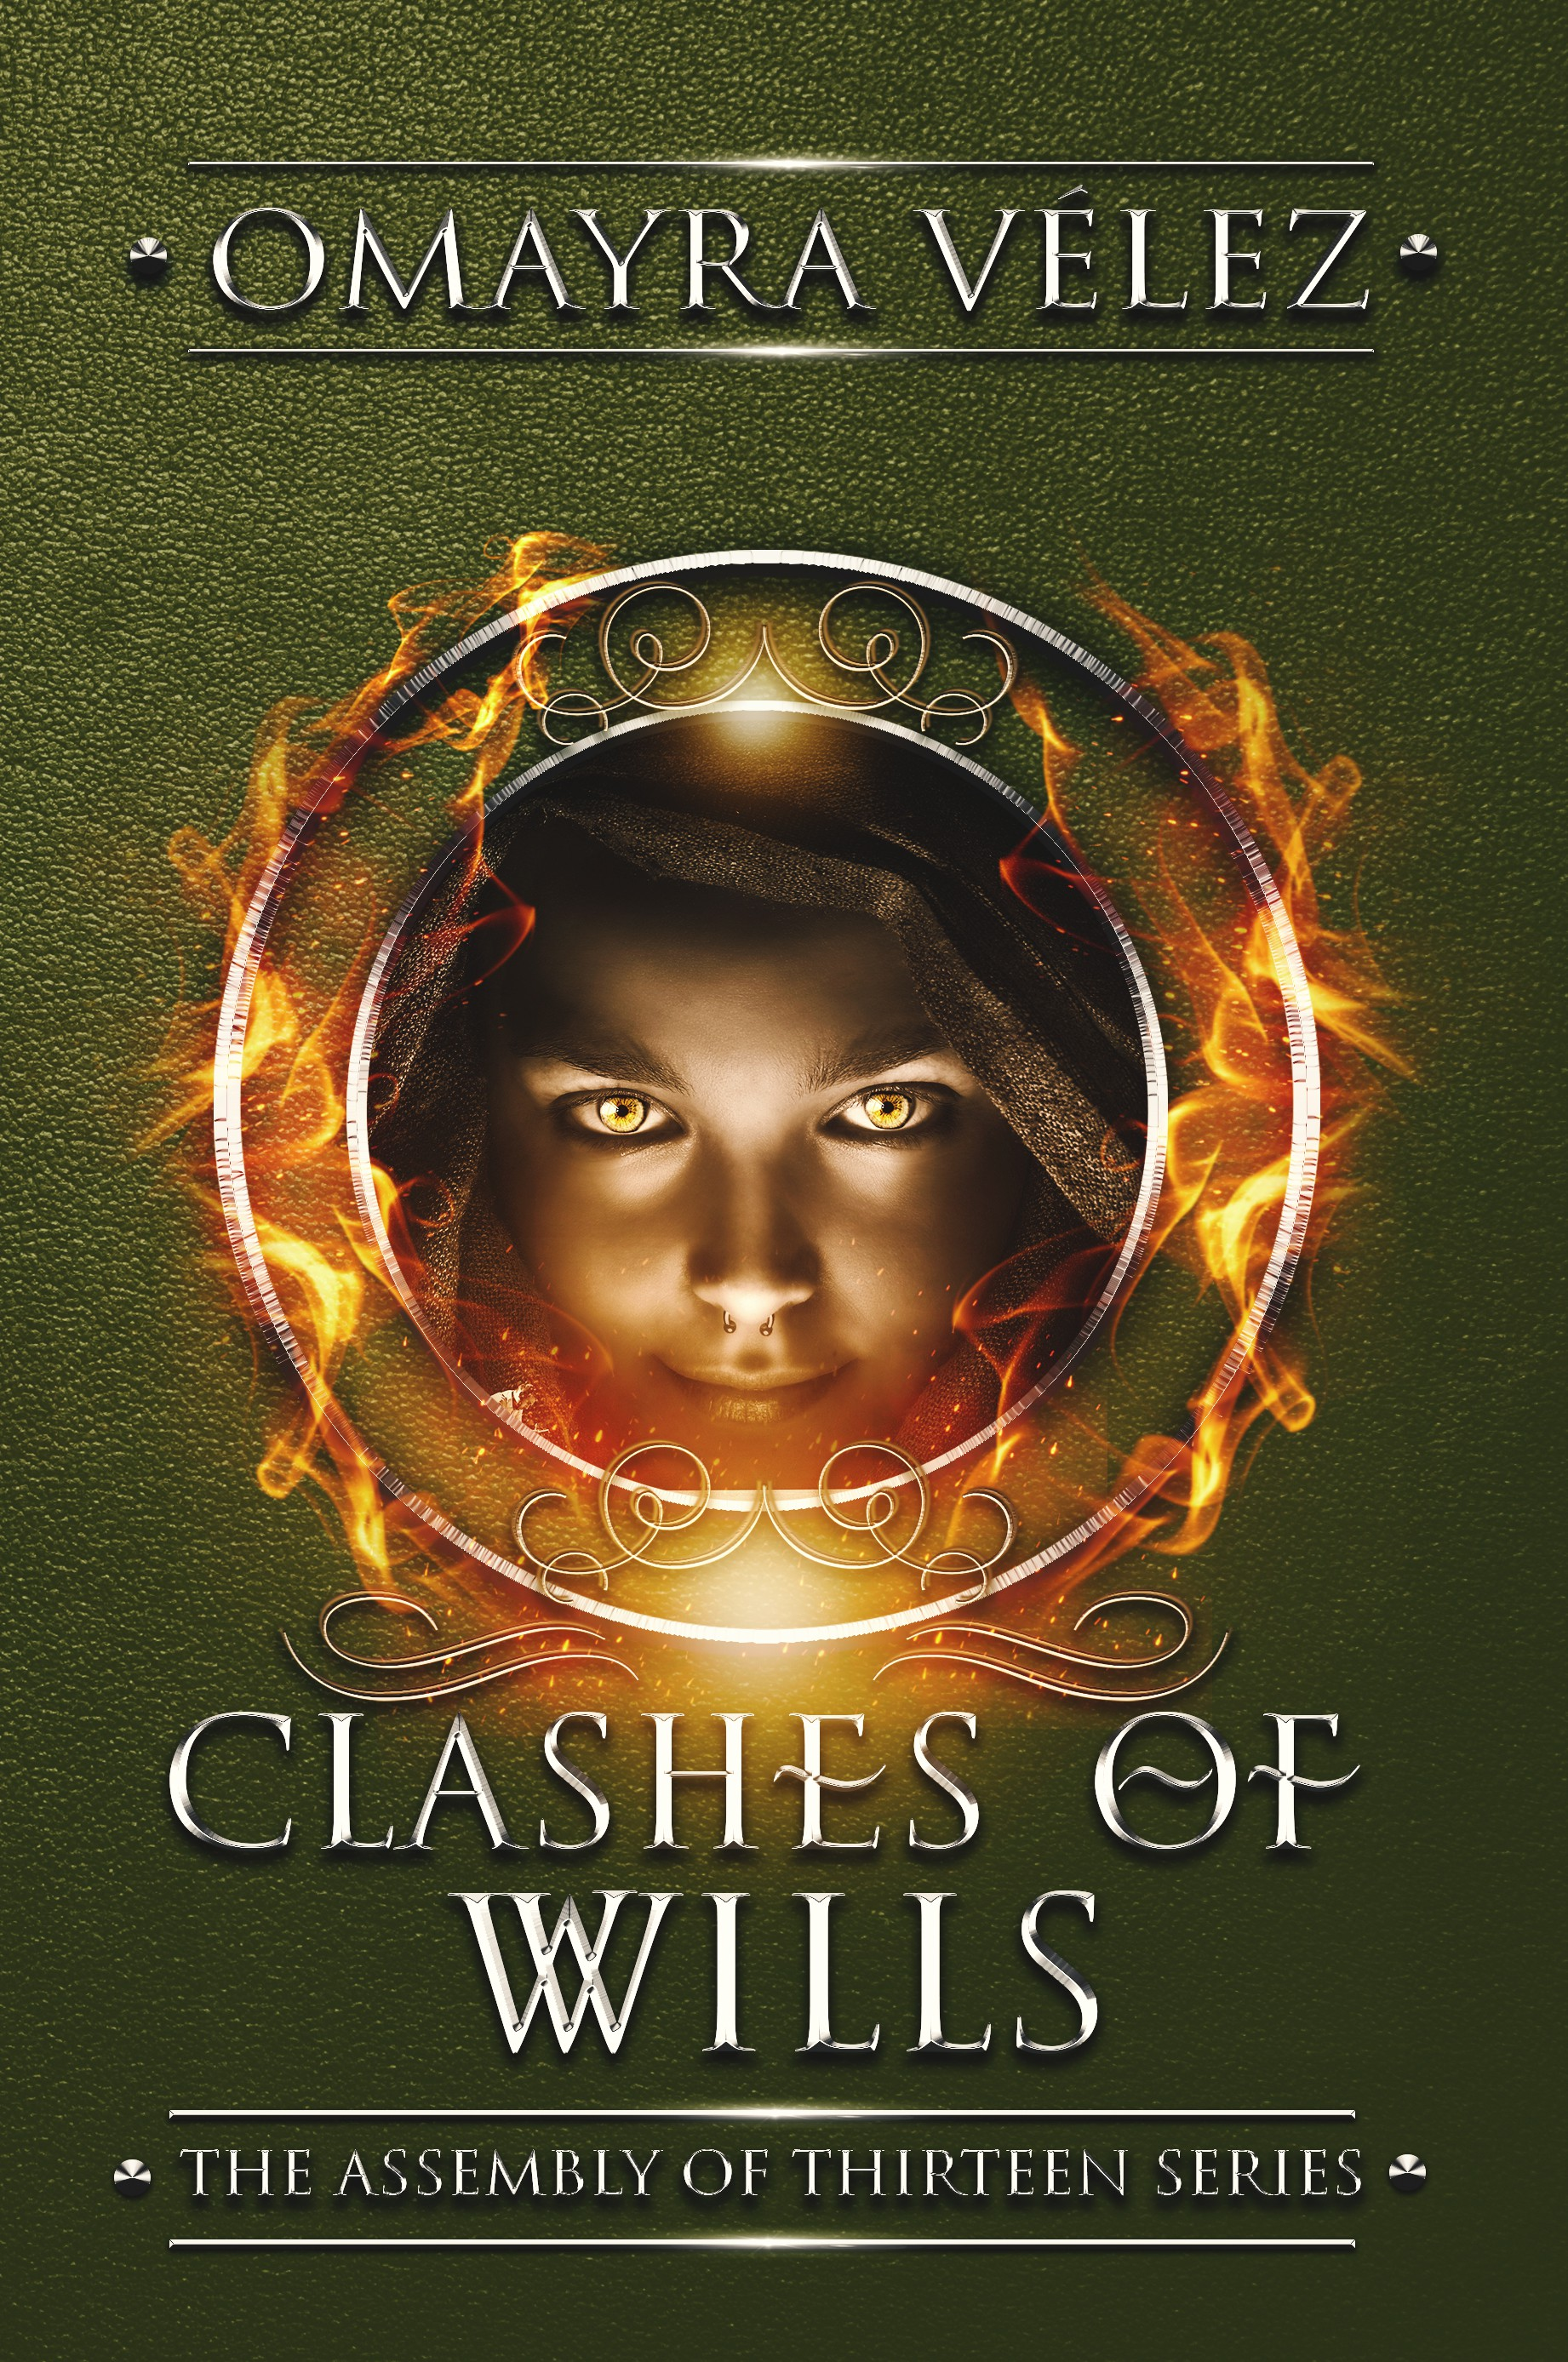 Third Book, Clashes of Wills